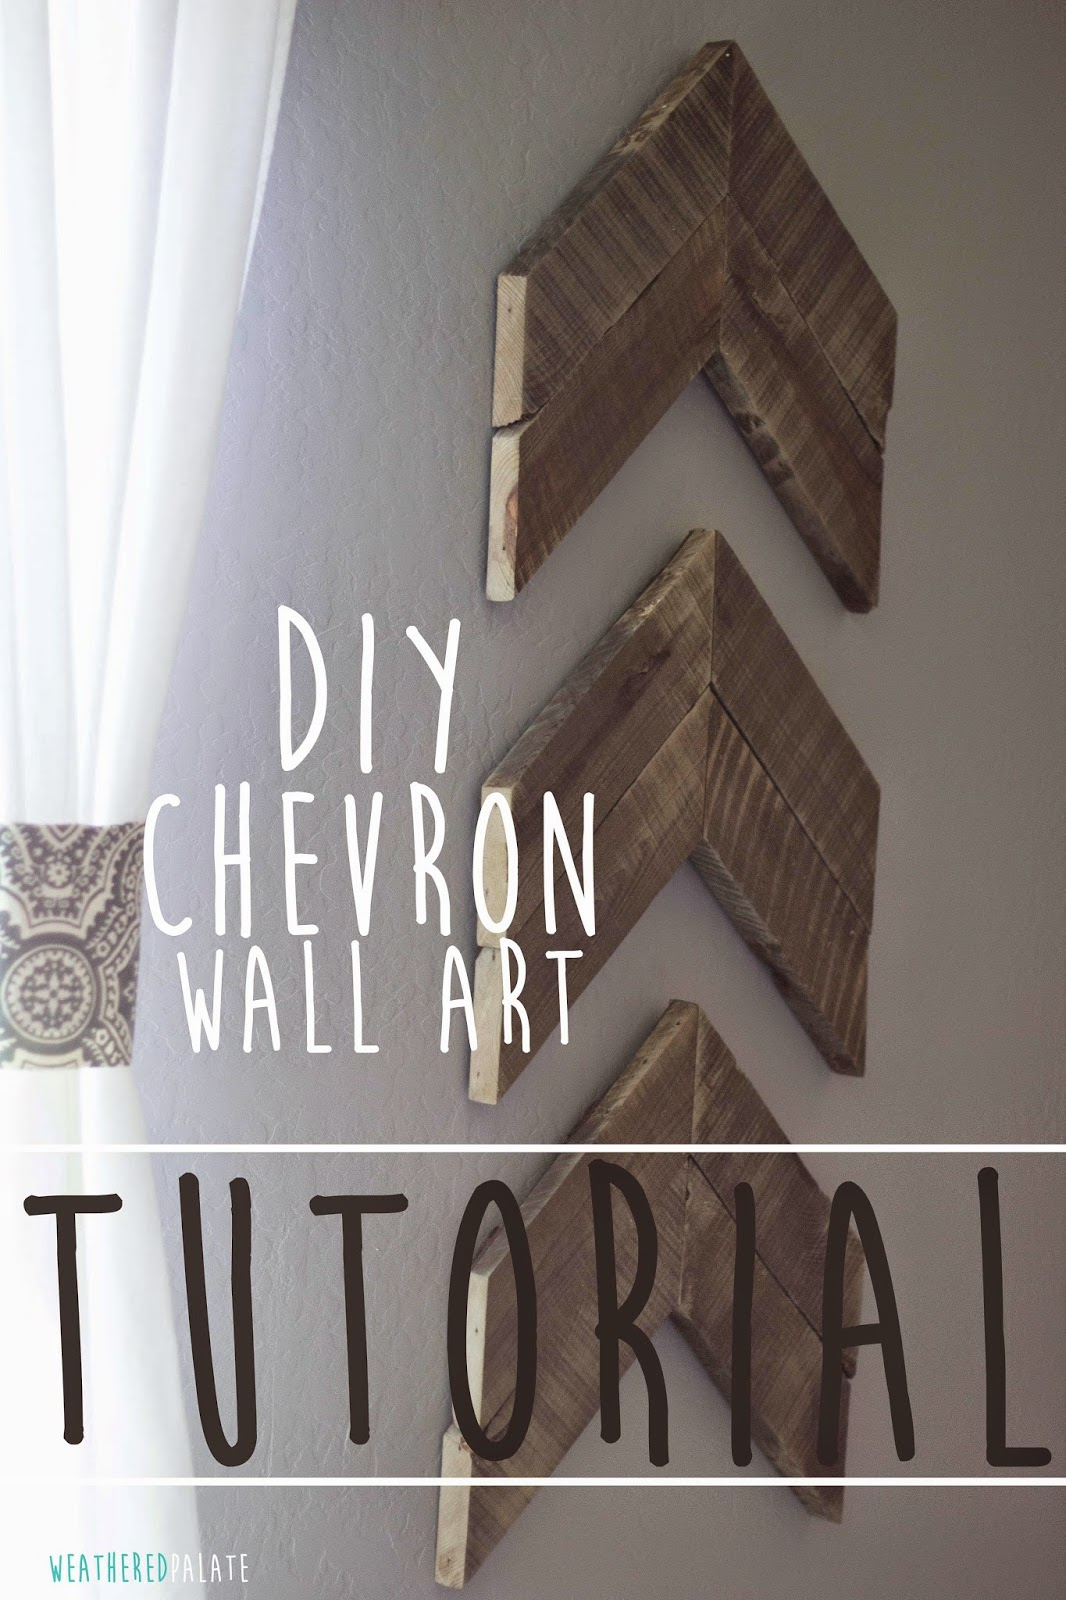 http://www.theweatheredpalate.com/2014/09/diy-chevron-wall-art-tutorial.html